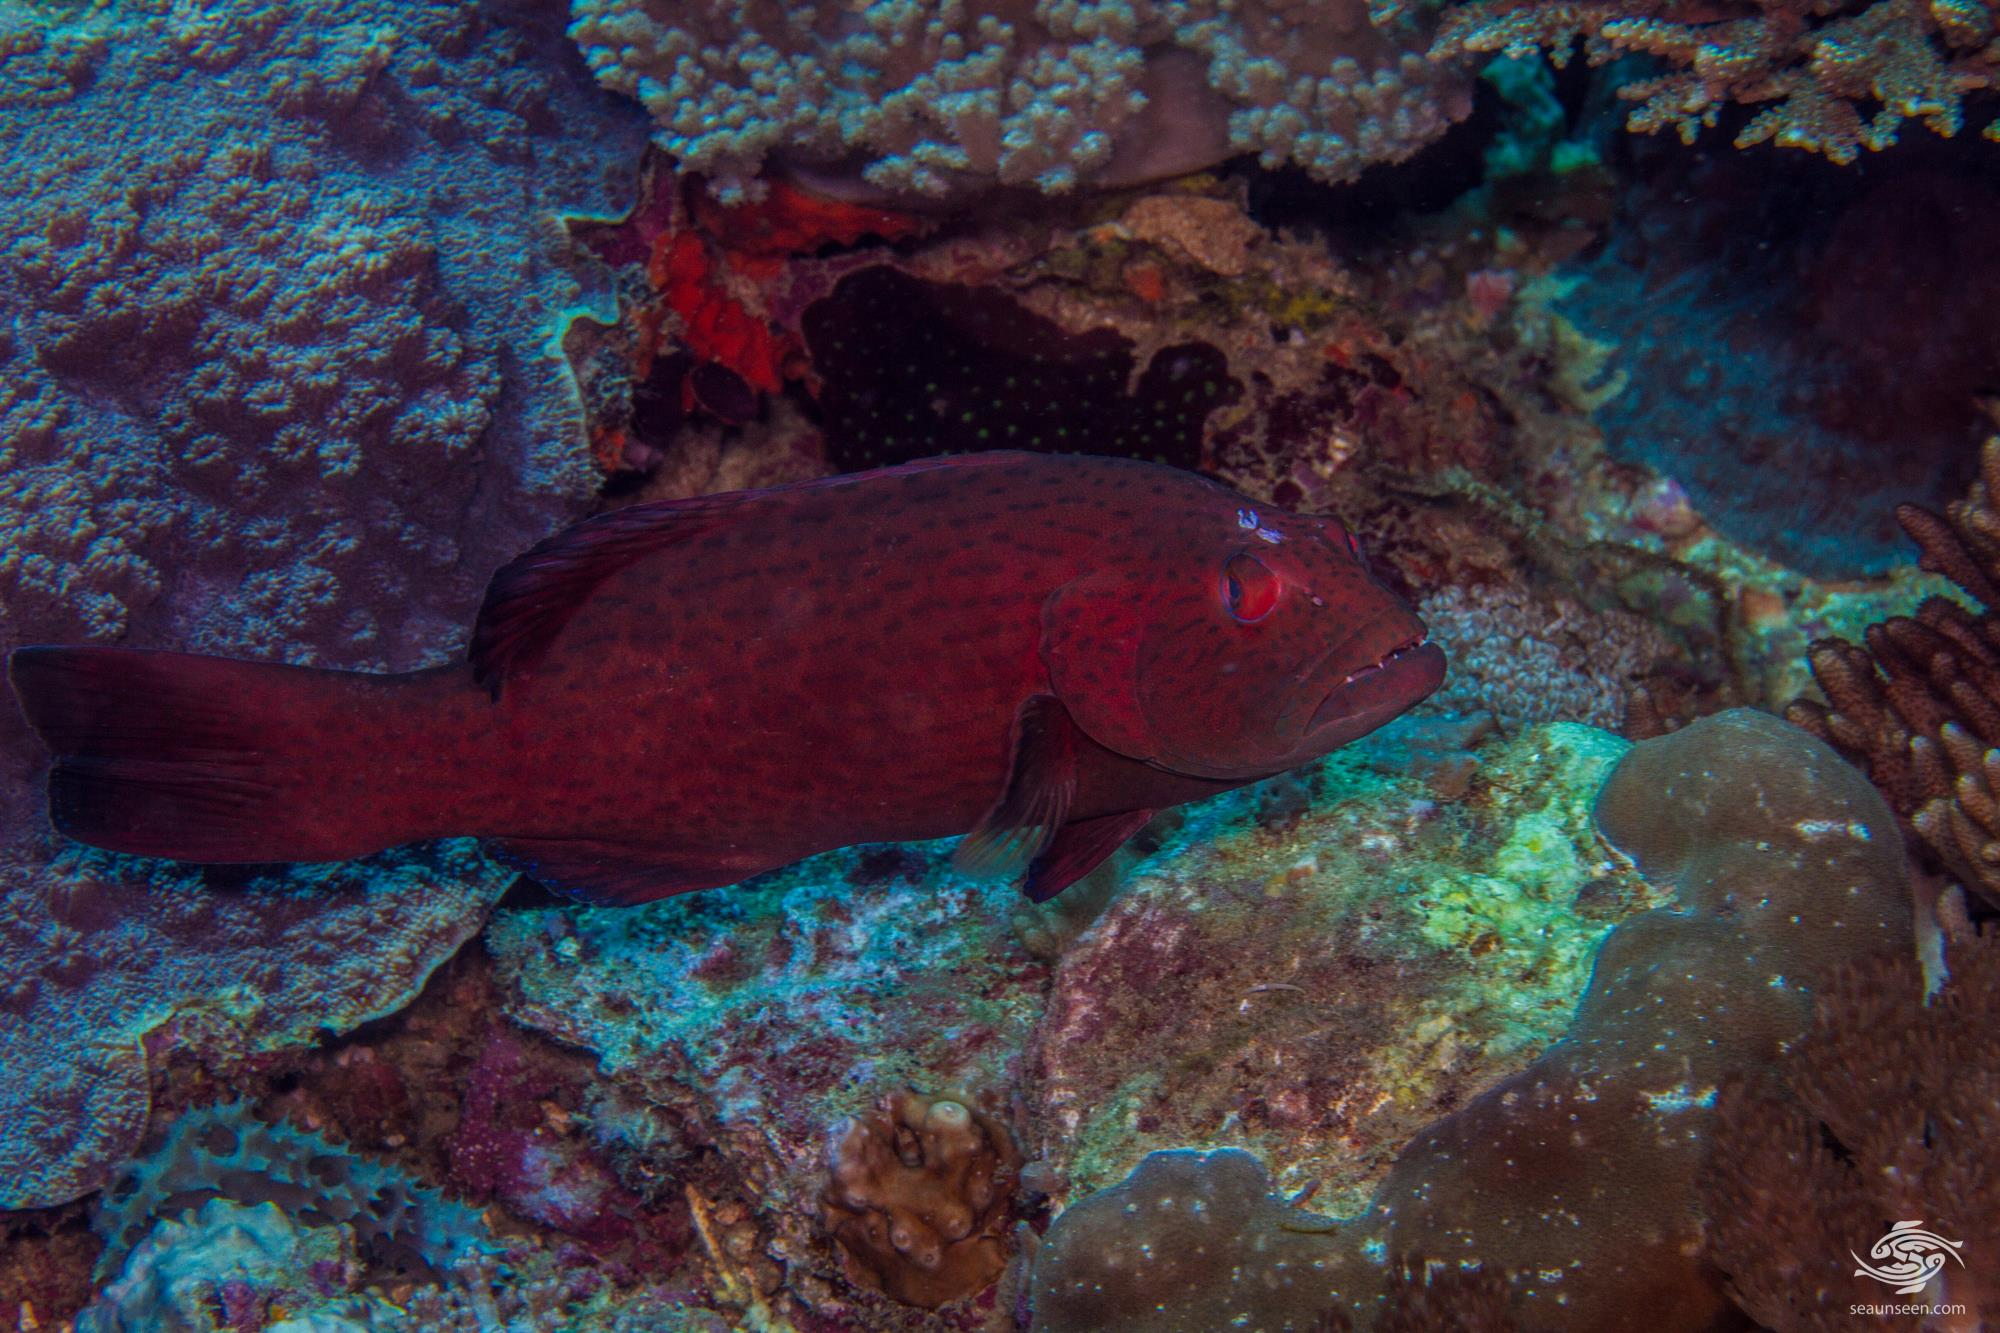 Marbled Leopard Grouper (Plectropomus punctatus) is also known as the Marbled Coral Grouper and the Marbled Leopard Rockcod